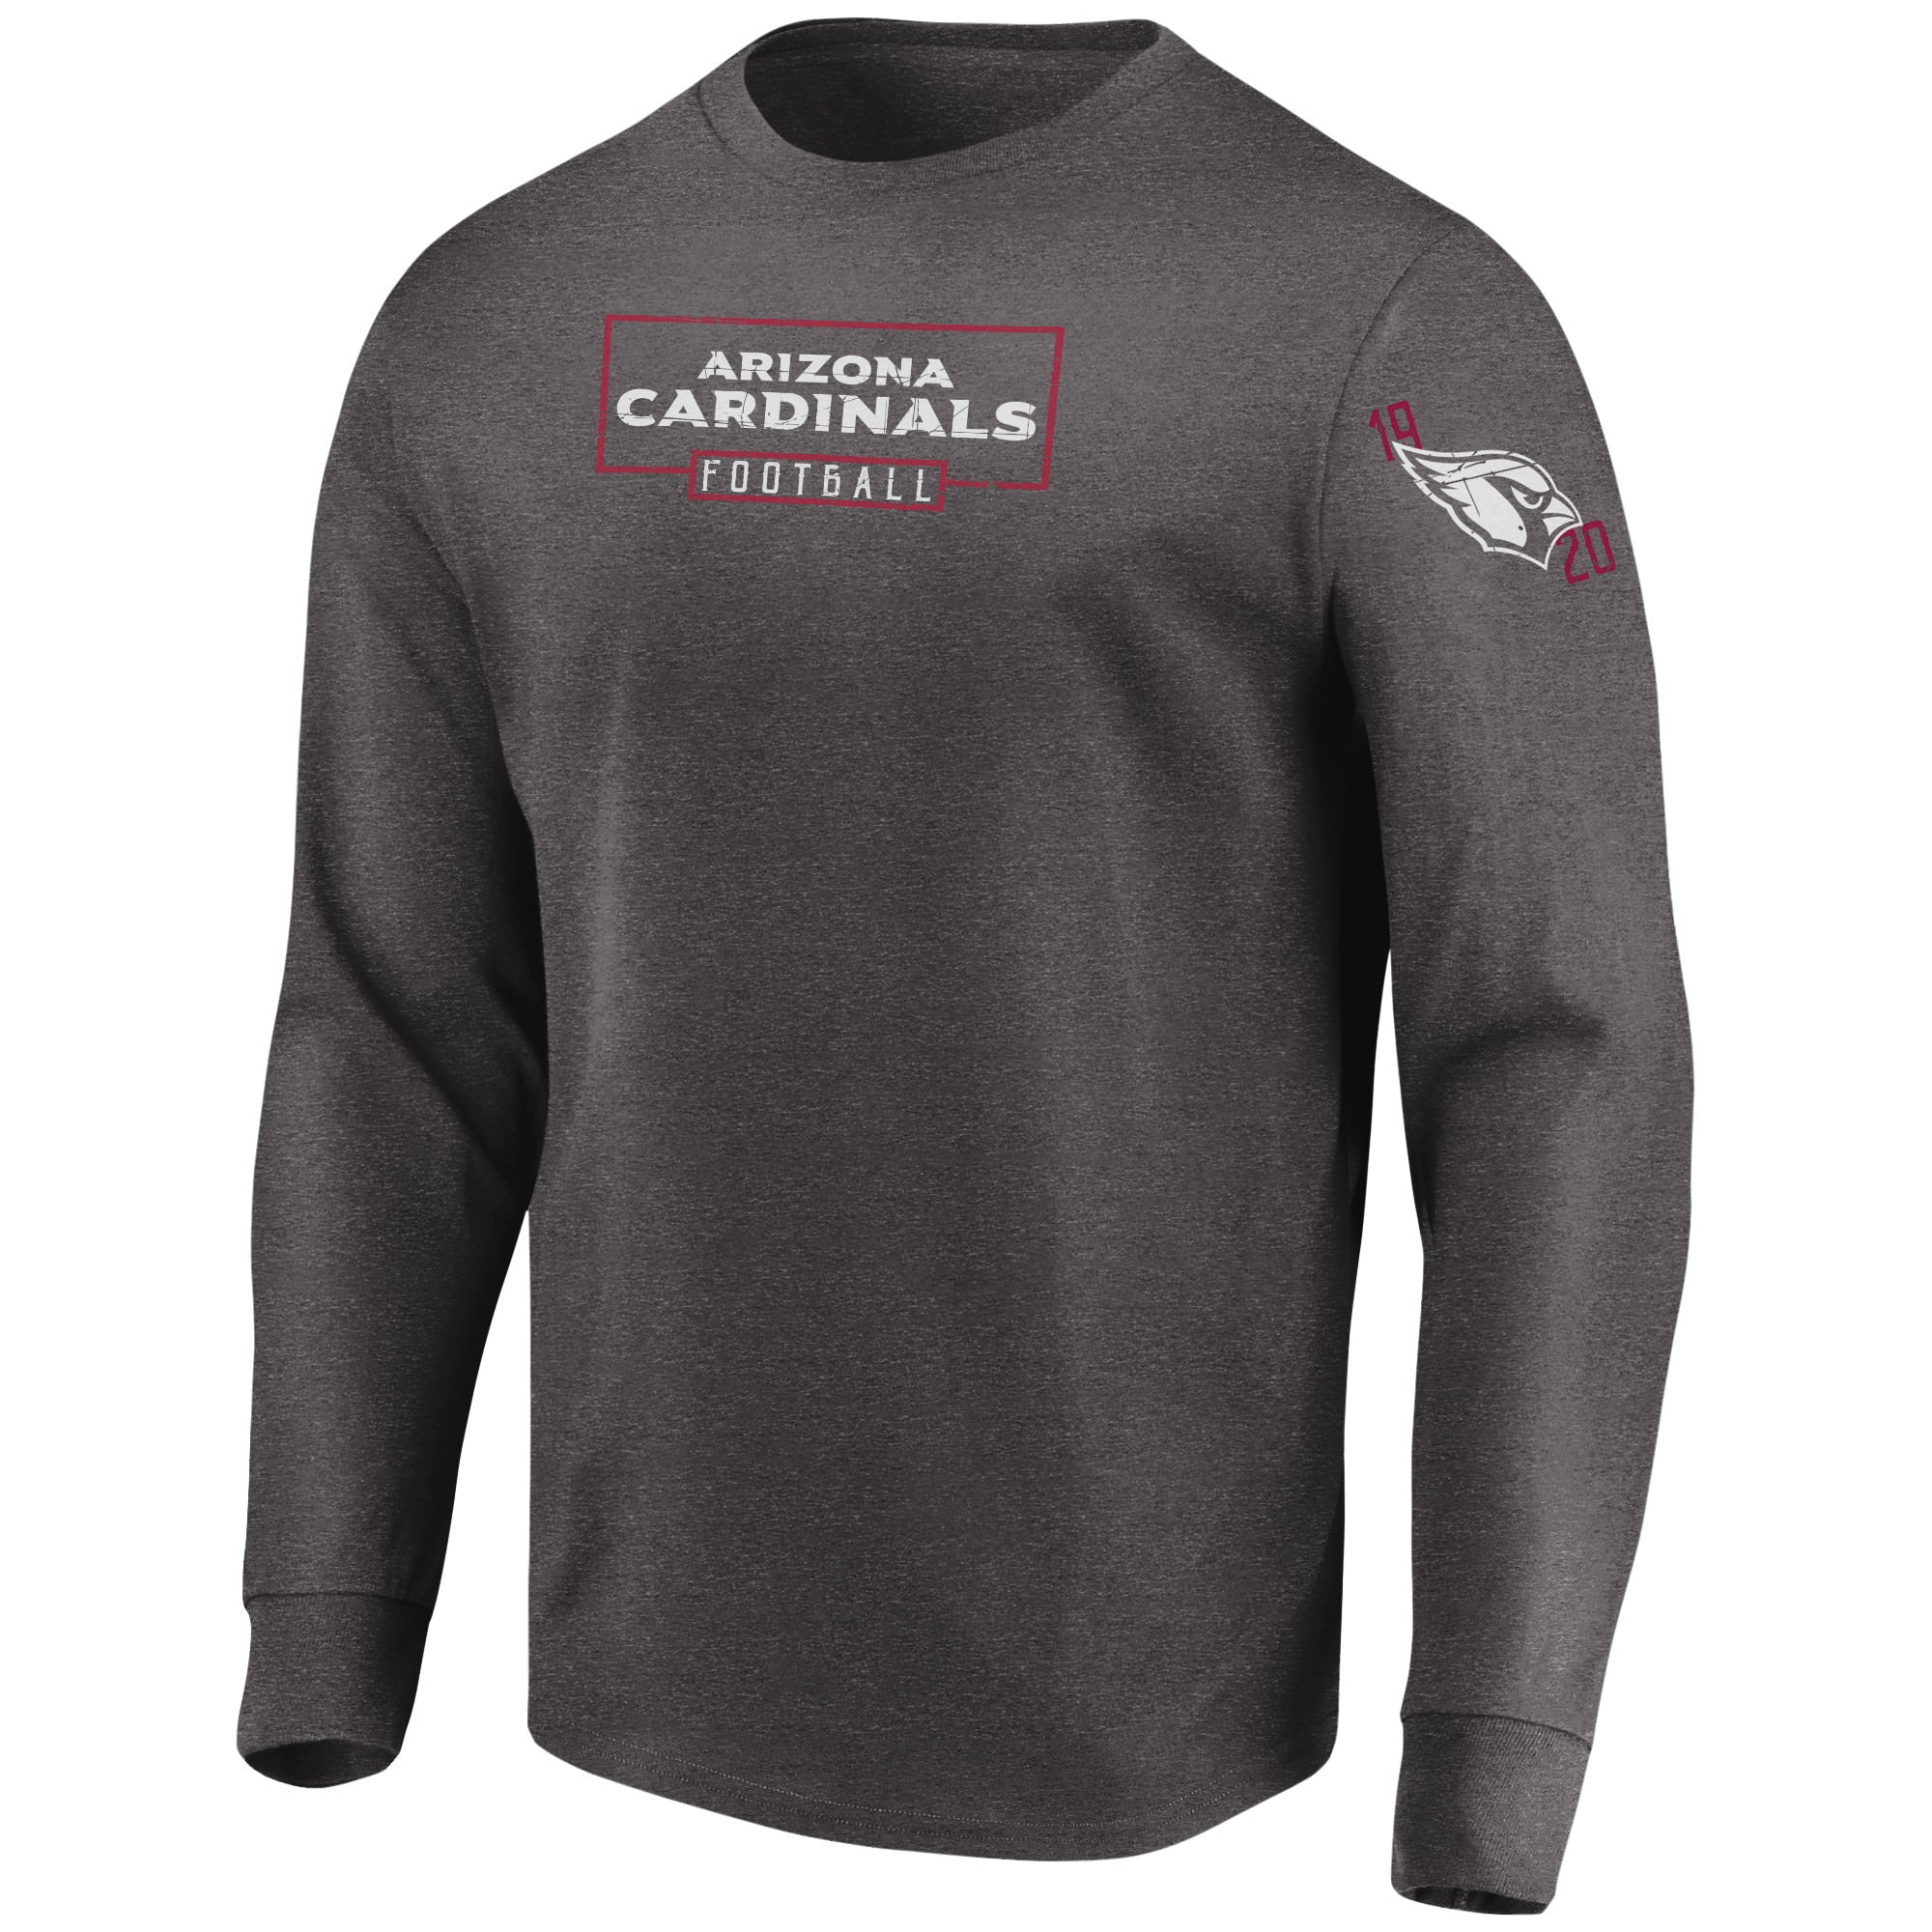 Arizona Cardinals NFL Kick Return Long Sleeve Tee – Sport Army d4c7d4608